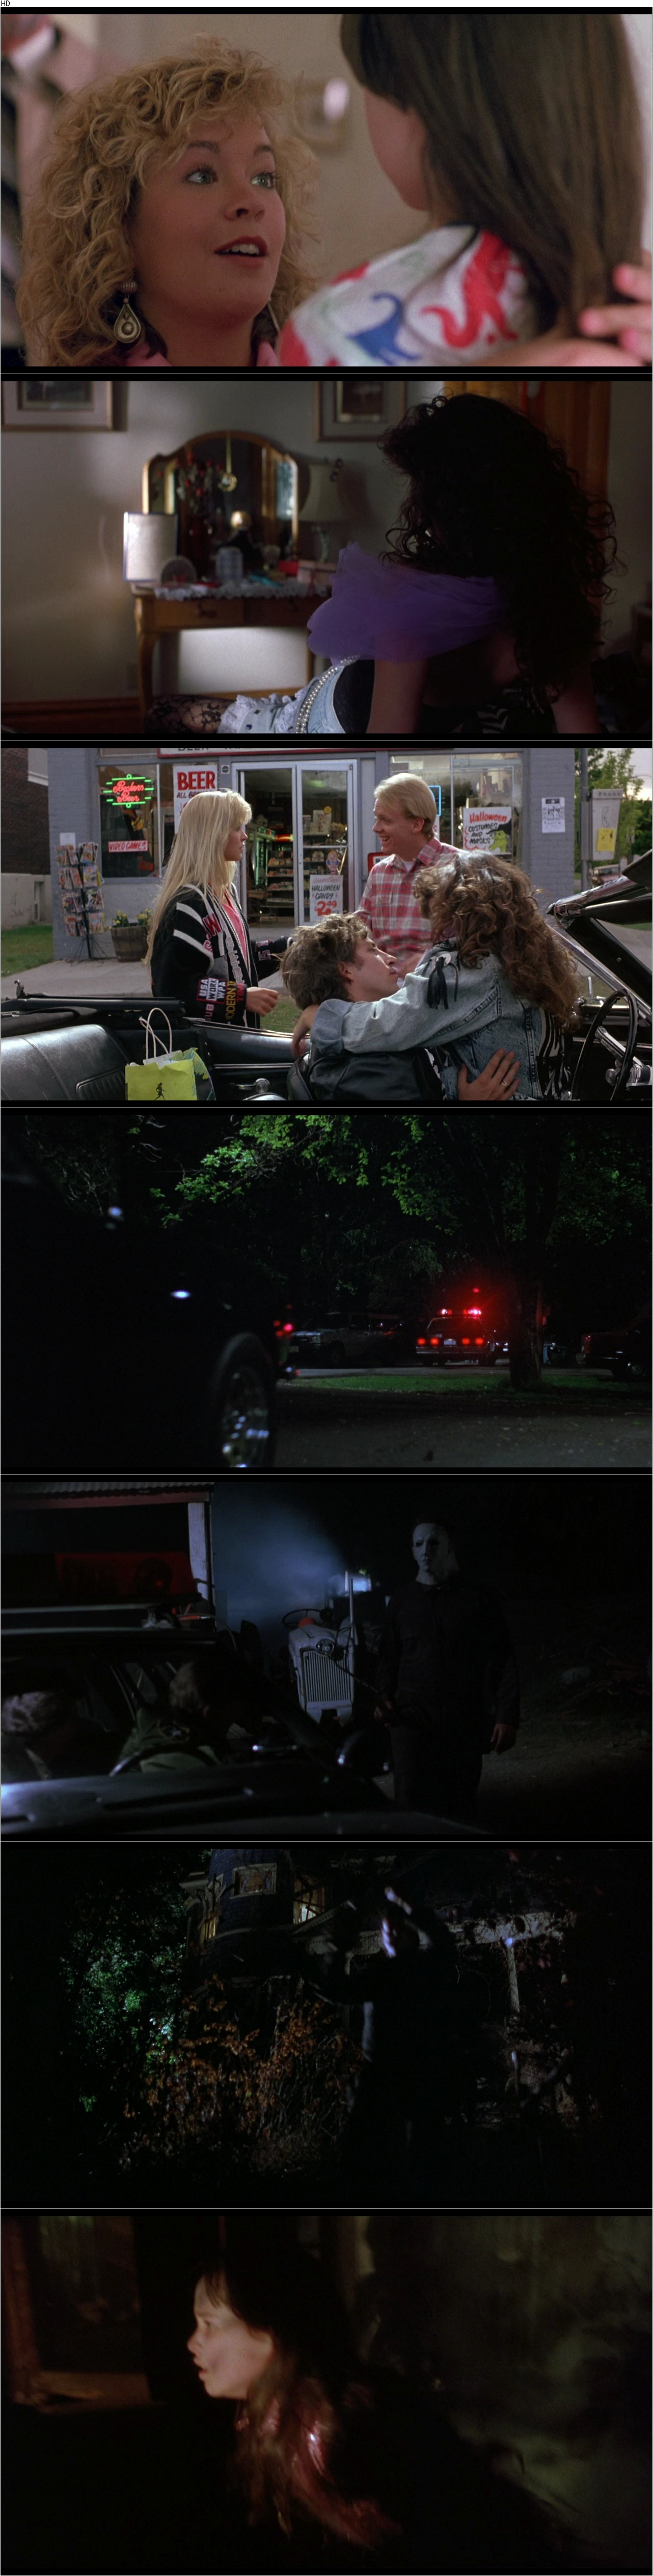 Halloween 5: The Revenge of Michael Myers (1989) [w/Commentaries]